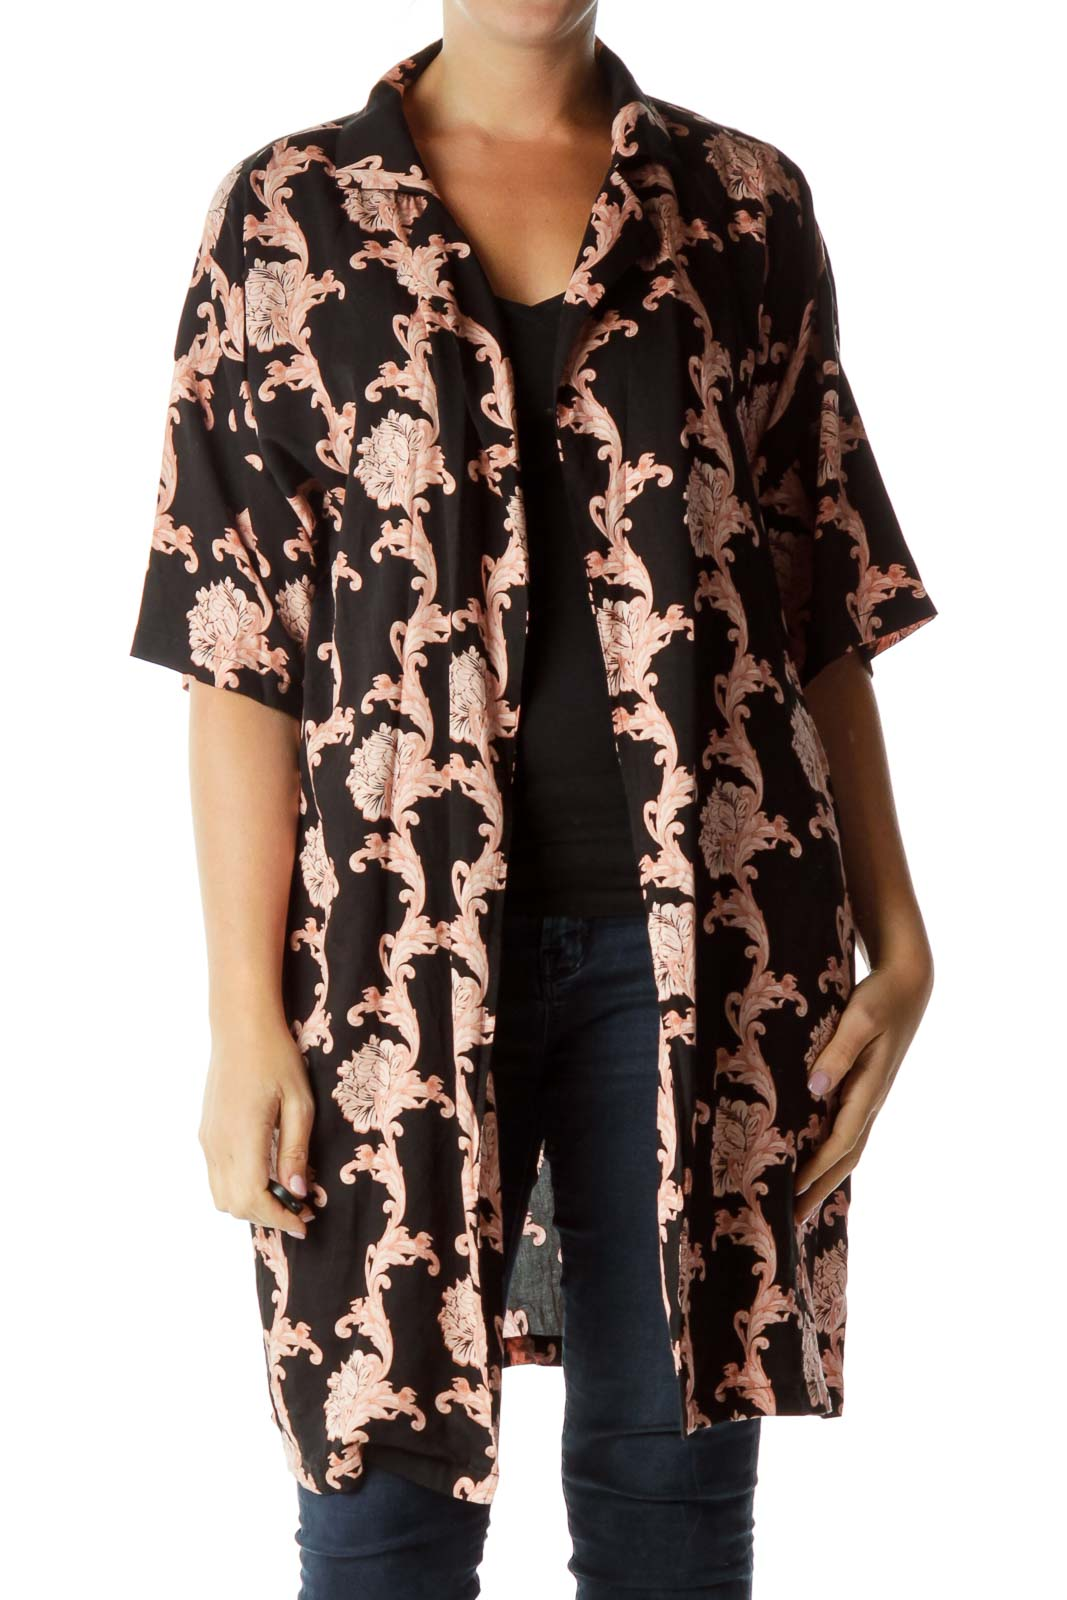 651ad2097a6d moves by minimum. Pink and Black Printed Loose Jacket ...